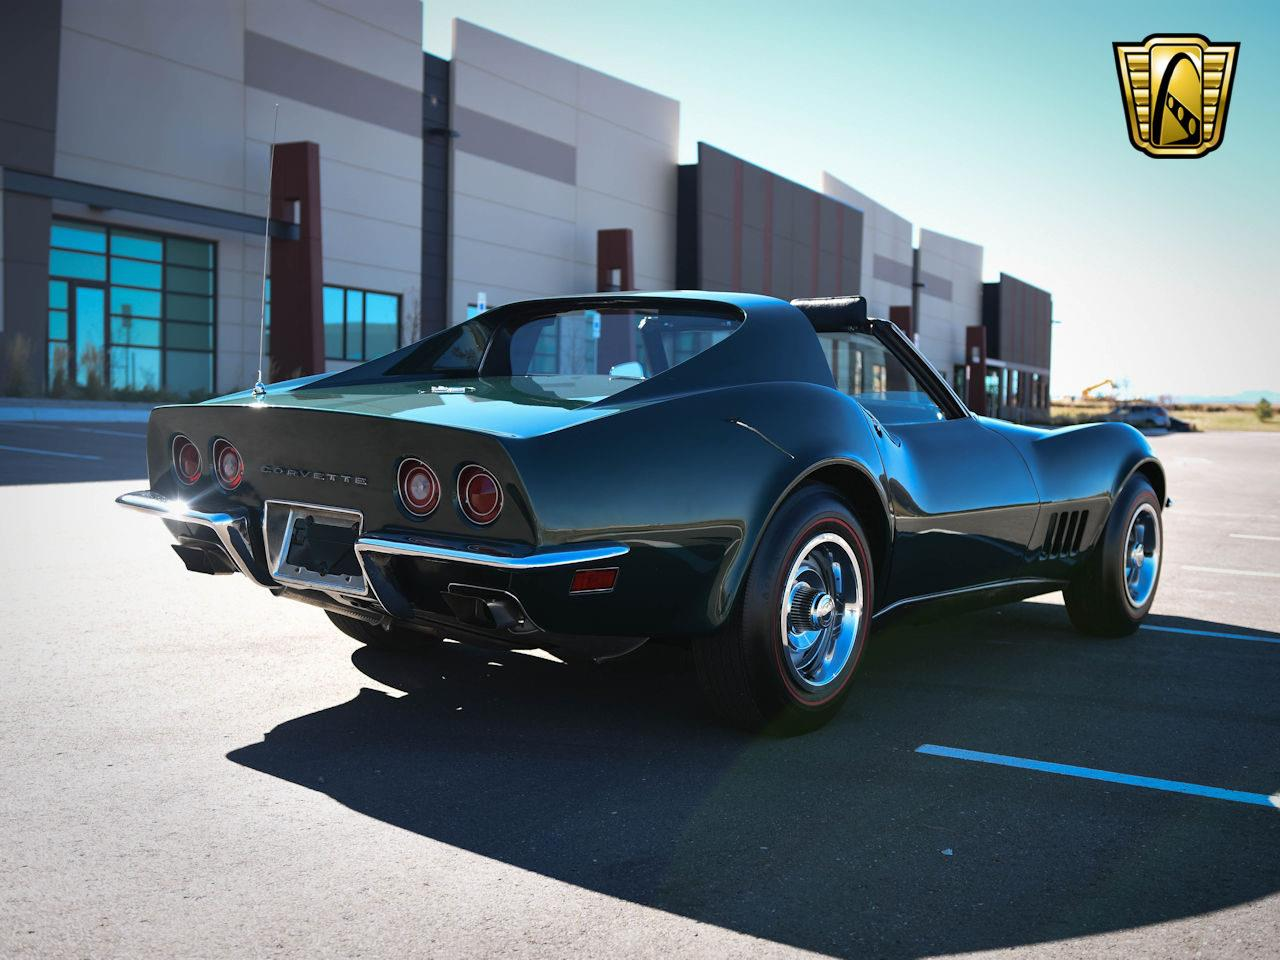 Large Picture of Classic '68 Corvette located in Illinois Offered by Gateway Classic Cars - Denver - M9KE